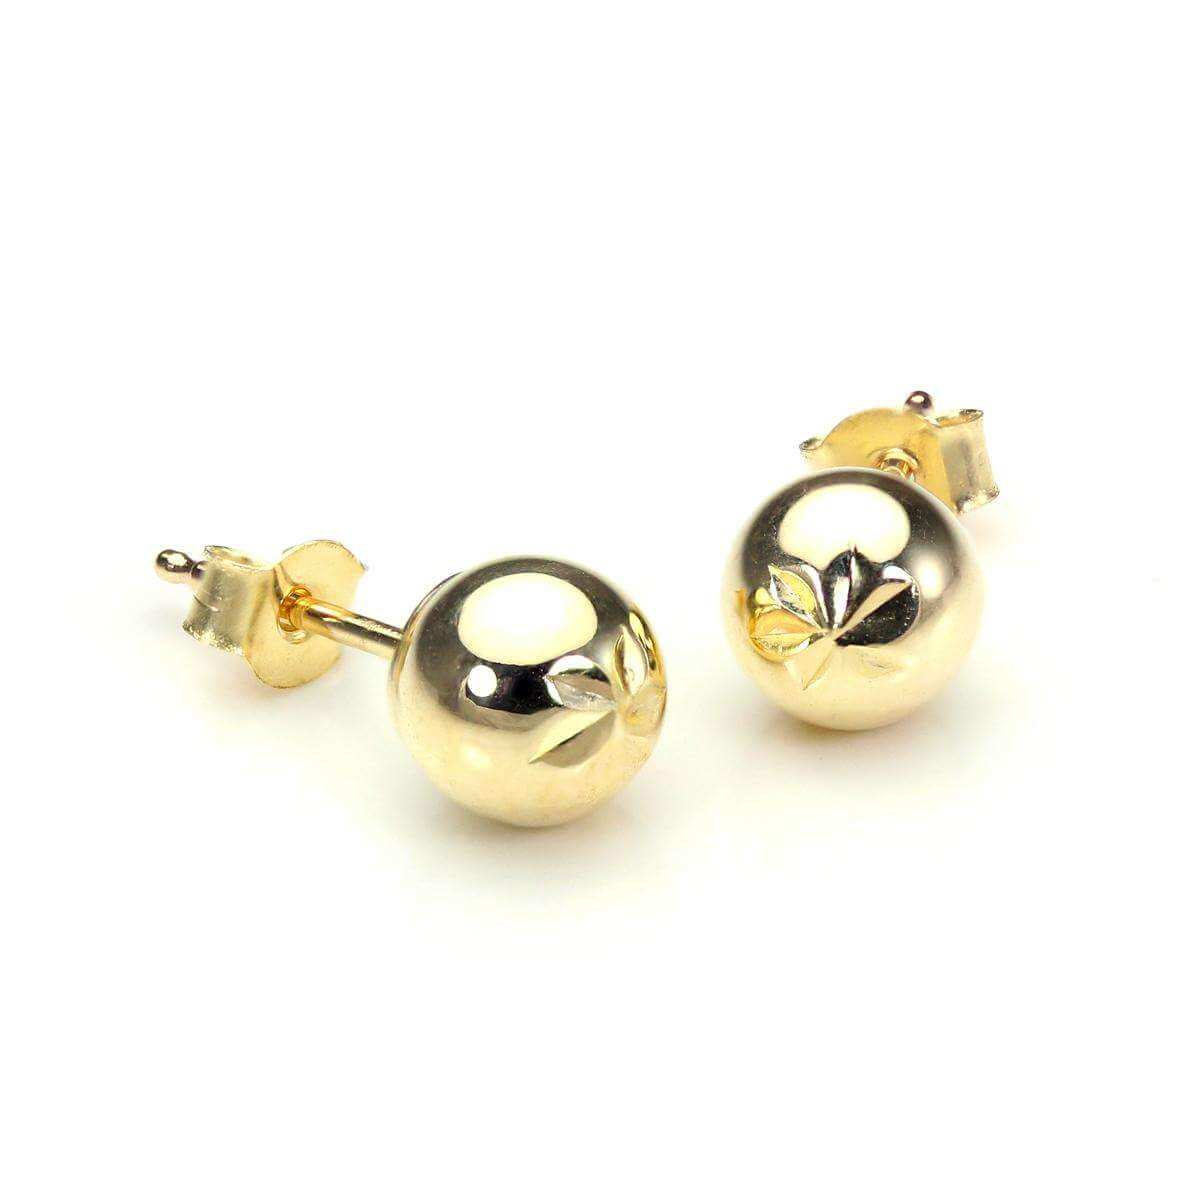 9ct Yellow Gold 5mm Diamond Cut Ball Stud Earrings